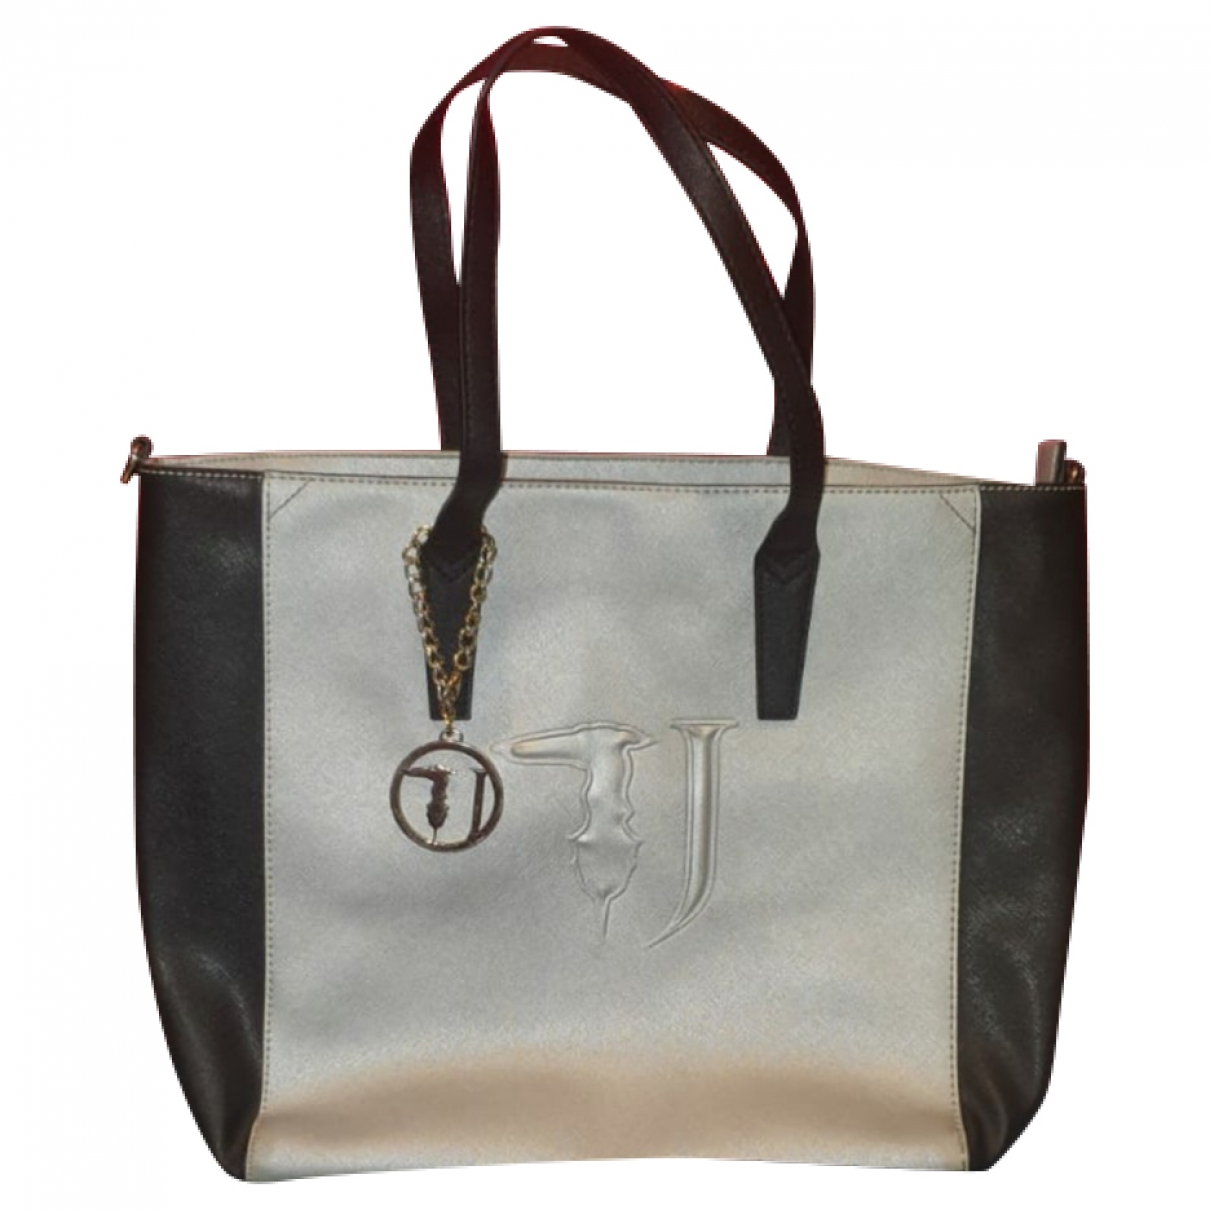 Trussardi Jeans \N Silver handbag for Women \N